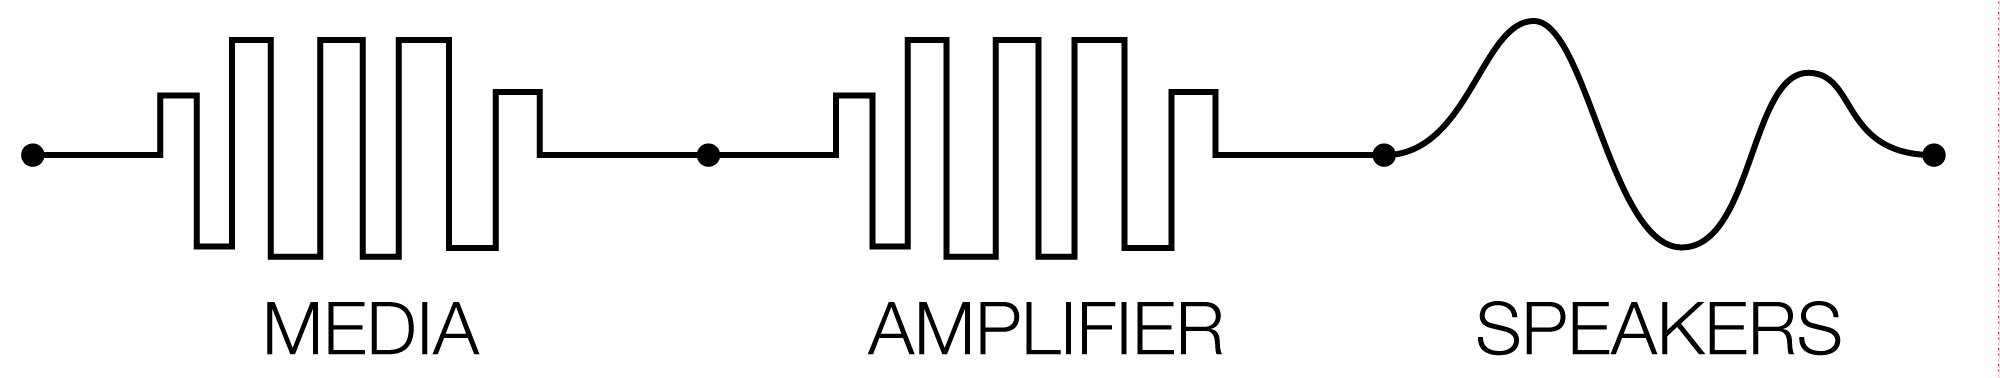 digital-amplification